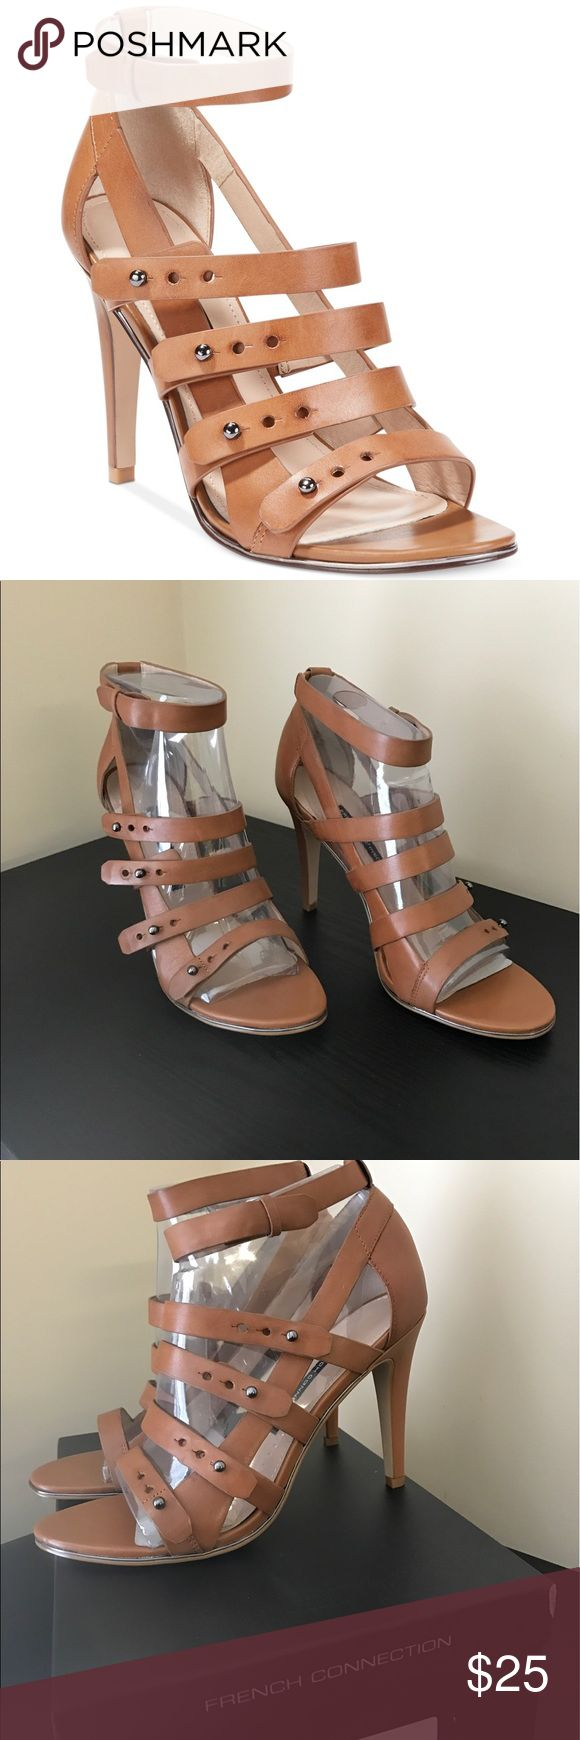 NWOT French Connection Caged Heels Dressy sandals featuring four straps with metallic push through notches. Heels are 100% leather and NEVER WORN, with box. Although they are a European size 41M, I would say they fit like a 10US sized heel. Super sexy and comfortable! French Connection Shoes Heels